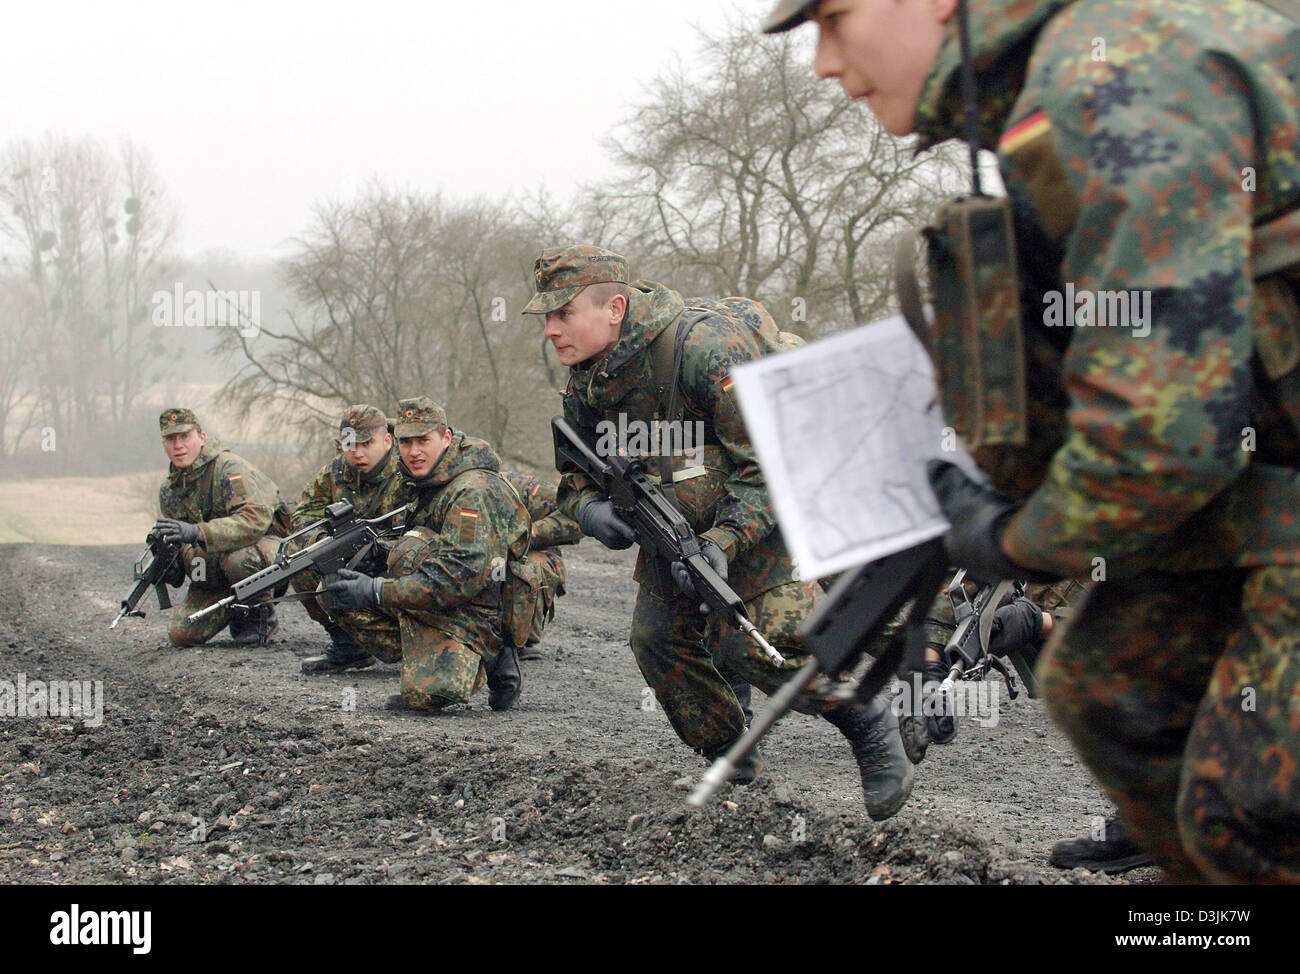 (dpa) - Recruits of the German Bundeswehr with guns of the G 36 type duck at a training area in Ahlen, Germany, - Stock Image